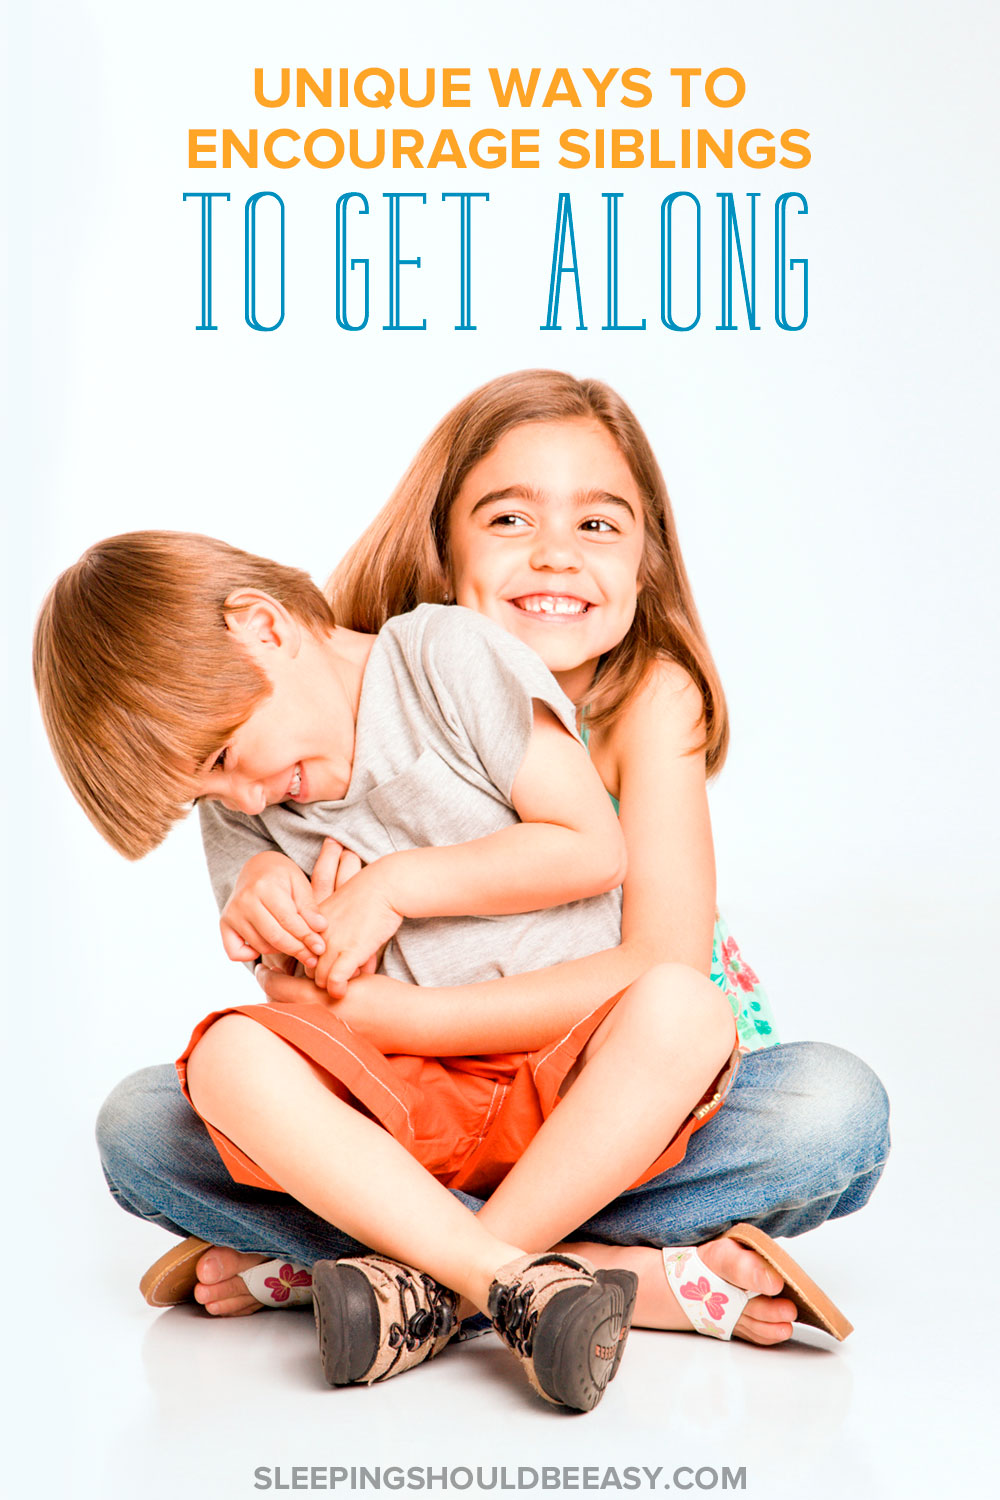 Sibling rivalry isn't inevitable. Many children actually like and get along with their siblings. Here are tips for helping siblings get along.